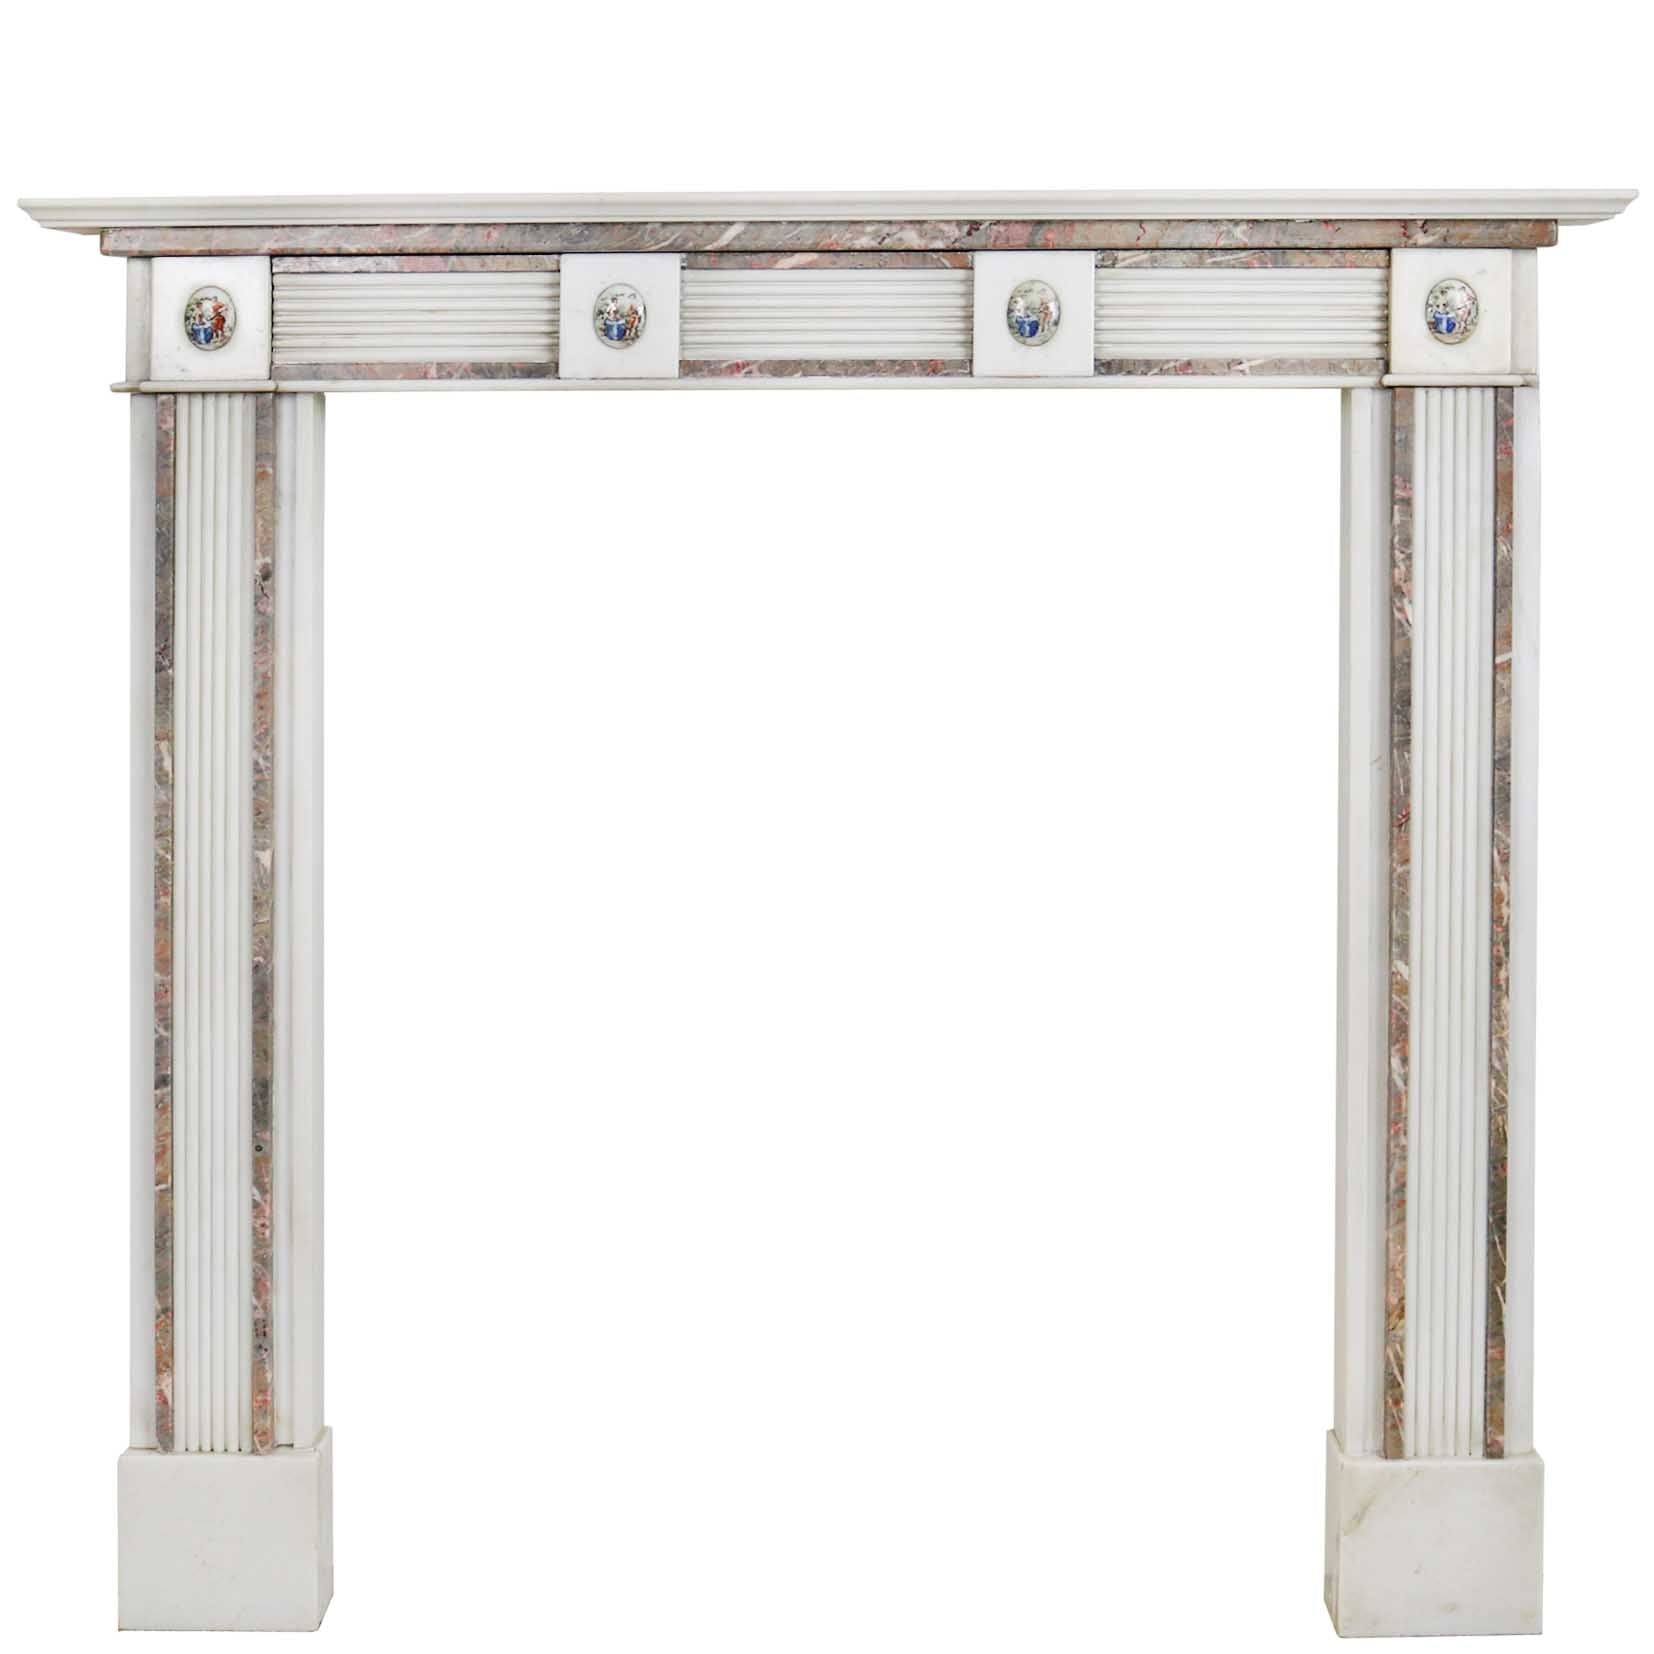 Regency Style Statutory & Rouge Royal Marble Fireplace Surround | The Architectural Forum